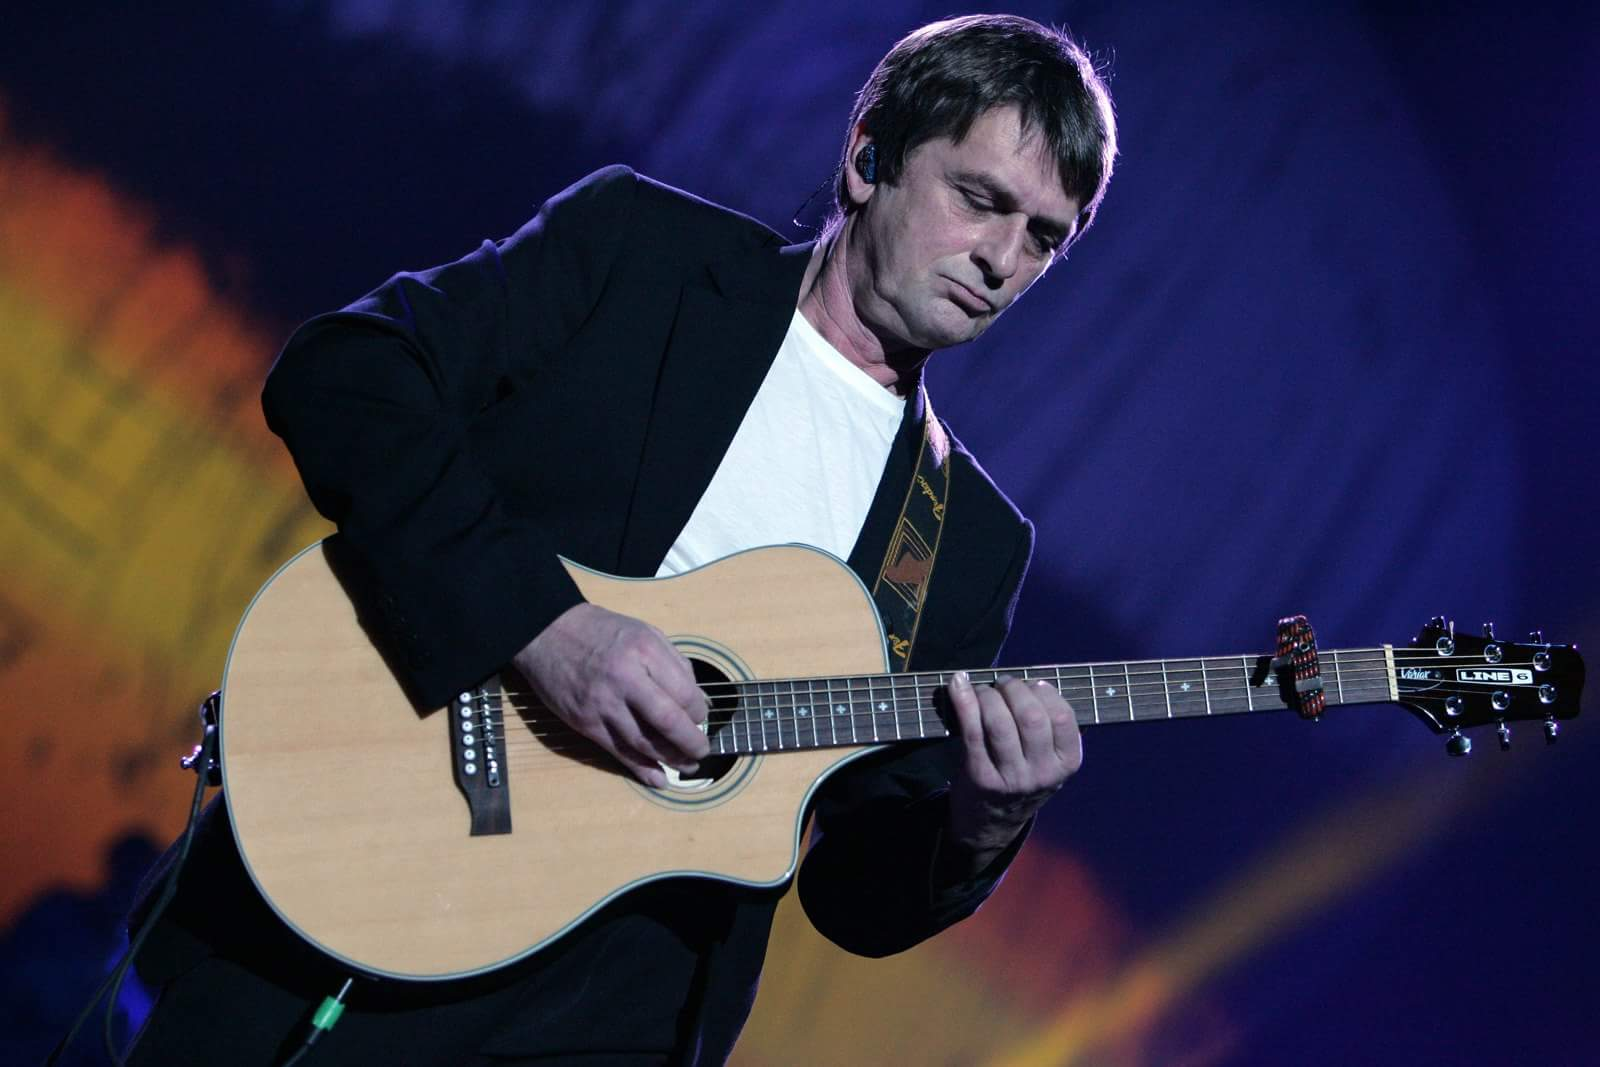 Happy birthday to the talented Mike Oldfield